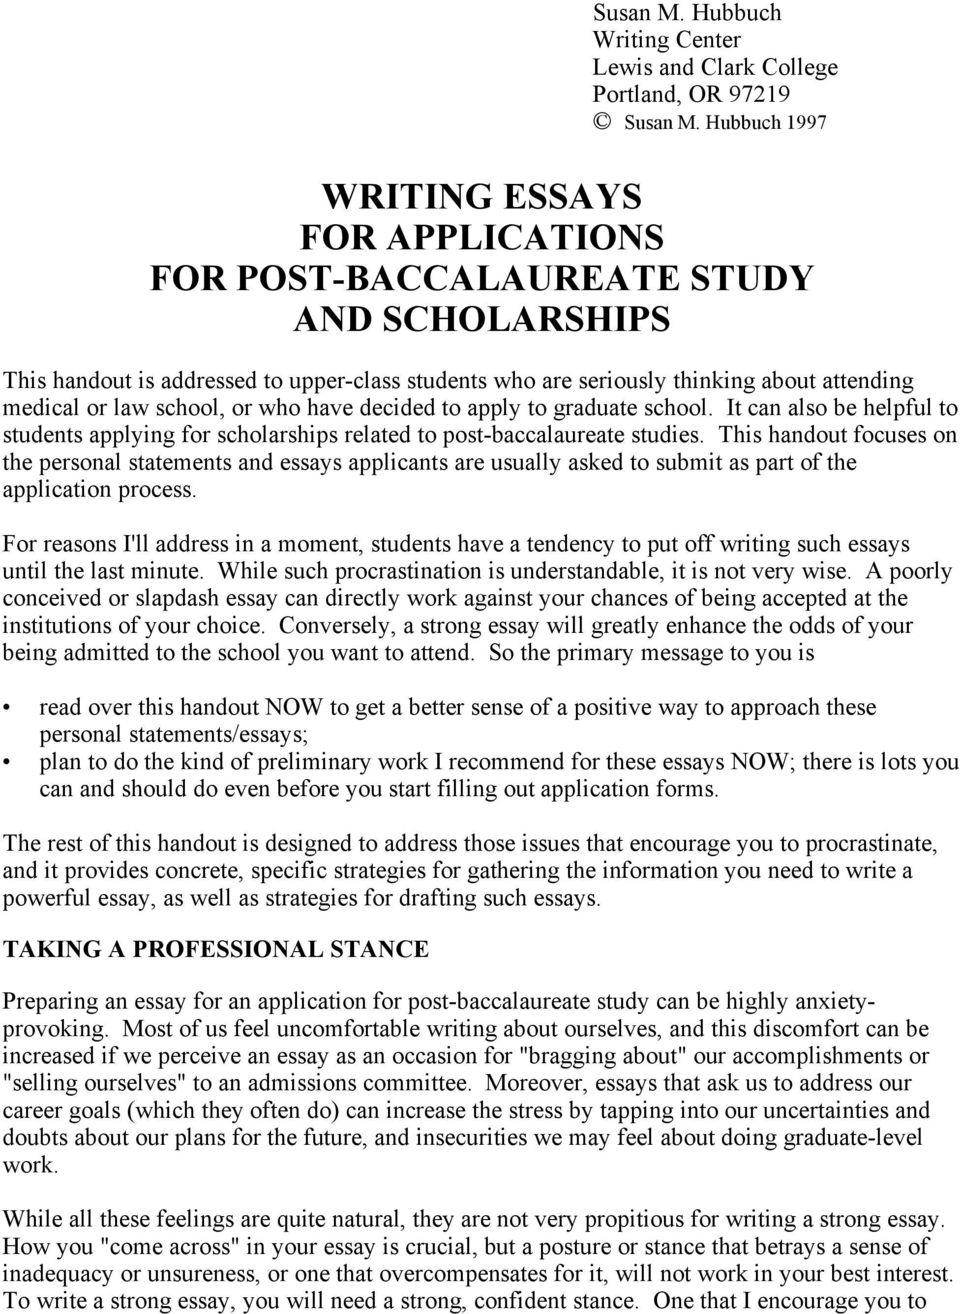 school, or who have decided to apply to graduate school. It can also be helpful to students applying for scholarships related to post-baccalaureate studies.